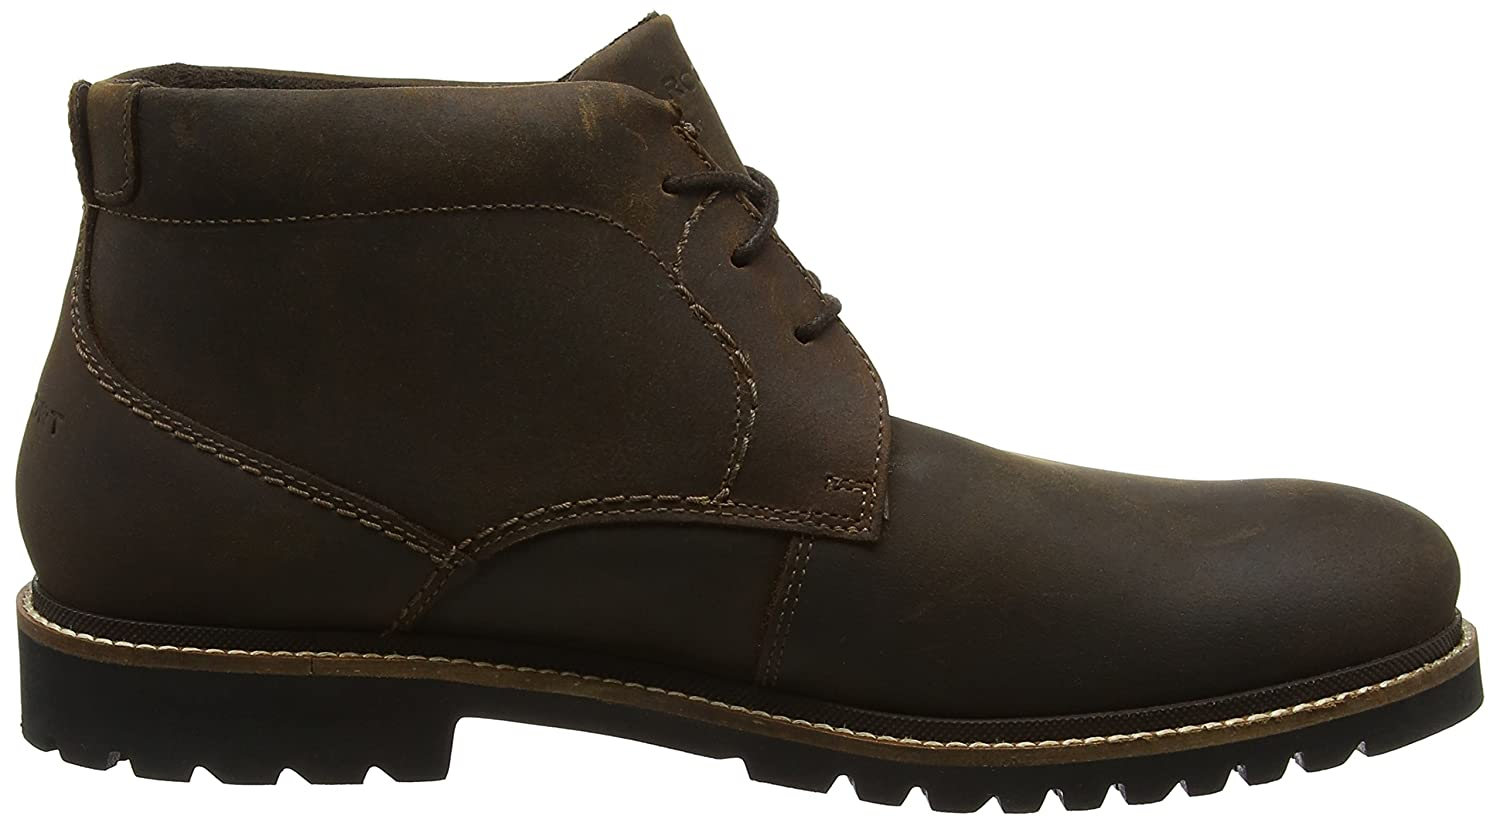 Rockport Herren Marshall Chukka Boots Braun (Brown (Brown (Brown Oiled Leather) db2a19